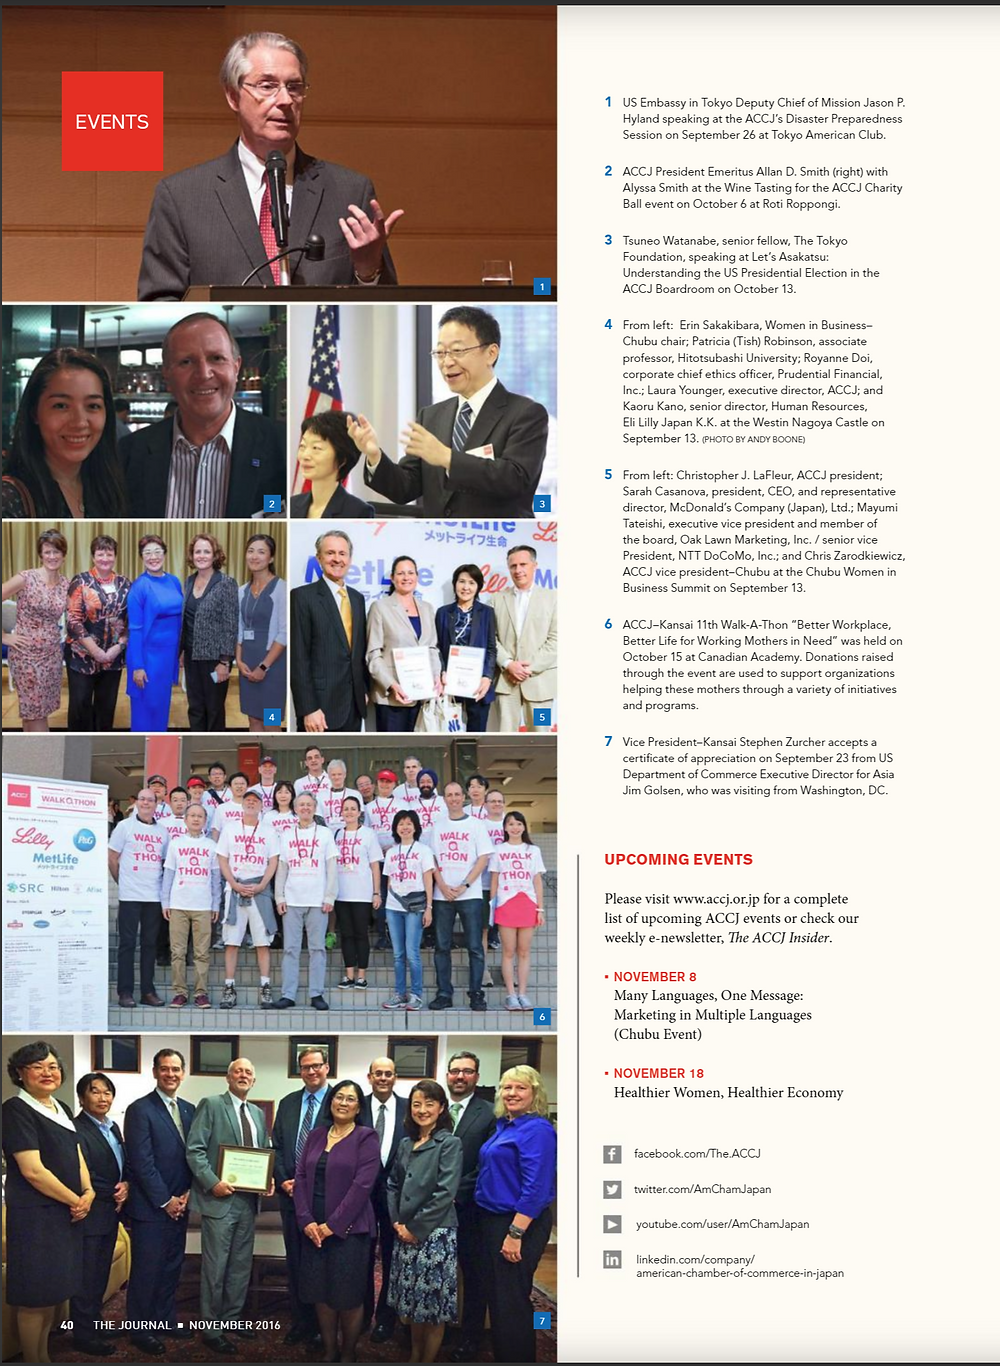 ACCJ the Journal November 2016 - Page 40 Date: Tuesday, September 13, 2016 Time: 1:00pm - 8:00pm Venue: The Westin Nagoya Castle  Speaker: Kaoru Kano (Senior Director, Human Resources, Eli Lilly Japan K.K.), Laura Younger (Executive Director, ACCJ), Masako Arakane (President, Qualia Inc.), Mayumi Tateishi (Vice President, Oak Lawn Marketing, Inc.), Patricia (Tish) Robinson (Associate Professor, Hitotsubashi University), Rita Chhabra (Regional Director, Northeast US, Catalyst Inc.), Royanne Doi (Corporate Chief Ethics Officer, Prudential Financial, Inc.), Sarah L. Casanova (President and CEO, Representative Director, McDonald's Company (Japan), Ltd.), Tsukiko Tsukahara (Vice President, Catalyst Japan)  Hosting Committee(s): Chubu - Women in Business  ACCJ Chubu invites you to the Chubu Women in Business Summit. We are pleased to be hosting this, our third annual event, at the Westin Nagoya Castle on September 13 for a half day of influential speakers and hands-on workshops facilitated by leaders in their fields who are creating change and making space for more inclusive and diverse organizations. Building on the last two years and joining forces with both the Tokyo and Kansai Women in Business Committees, the Chubu Chapter is especially committed to providing opportunities for attendees to communicate, ask questions, and learn useful tools for becoming change makers in their own organizations. How do biases affect our organizations and how can we overcome those that are harmful? How can we create change from the bottom up? How can mentors affect our work life and play a role in organizations? These are just some of the topics that will be discussed.Click here to view the event program. Not for women only, these discussions need to be heard and had by men and women alike if we are to truly make a difference and create inclusion. Please sign up early. Seats are limited and an event like this only happens once a year.  Erin Sakakibara, Chair Nao Geisler, Vice Chair ACCJ